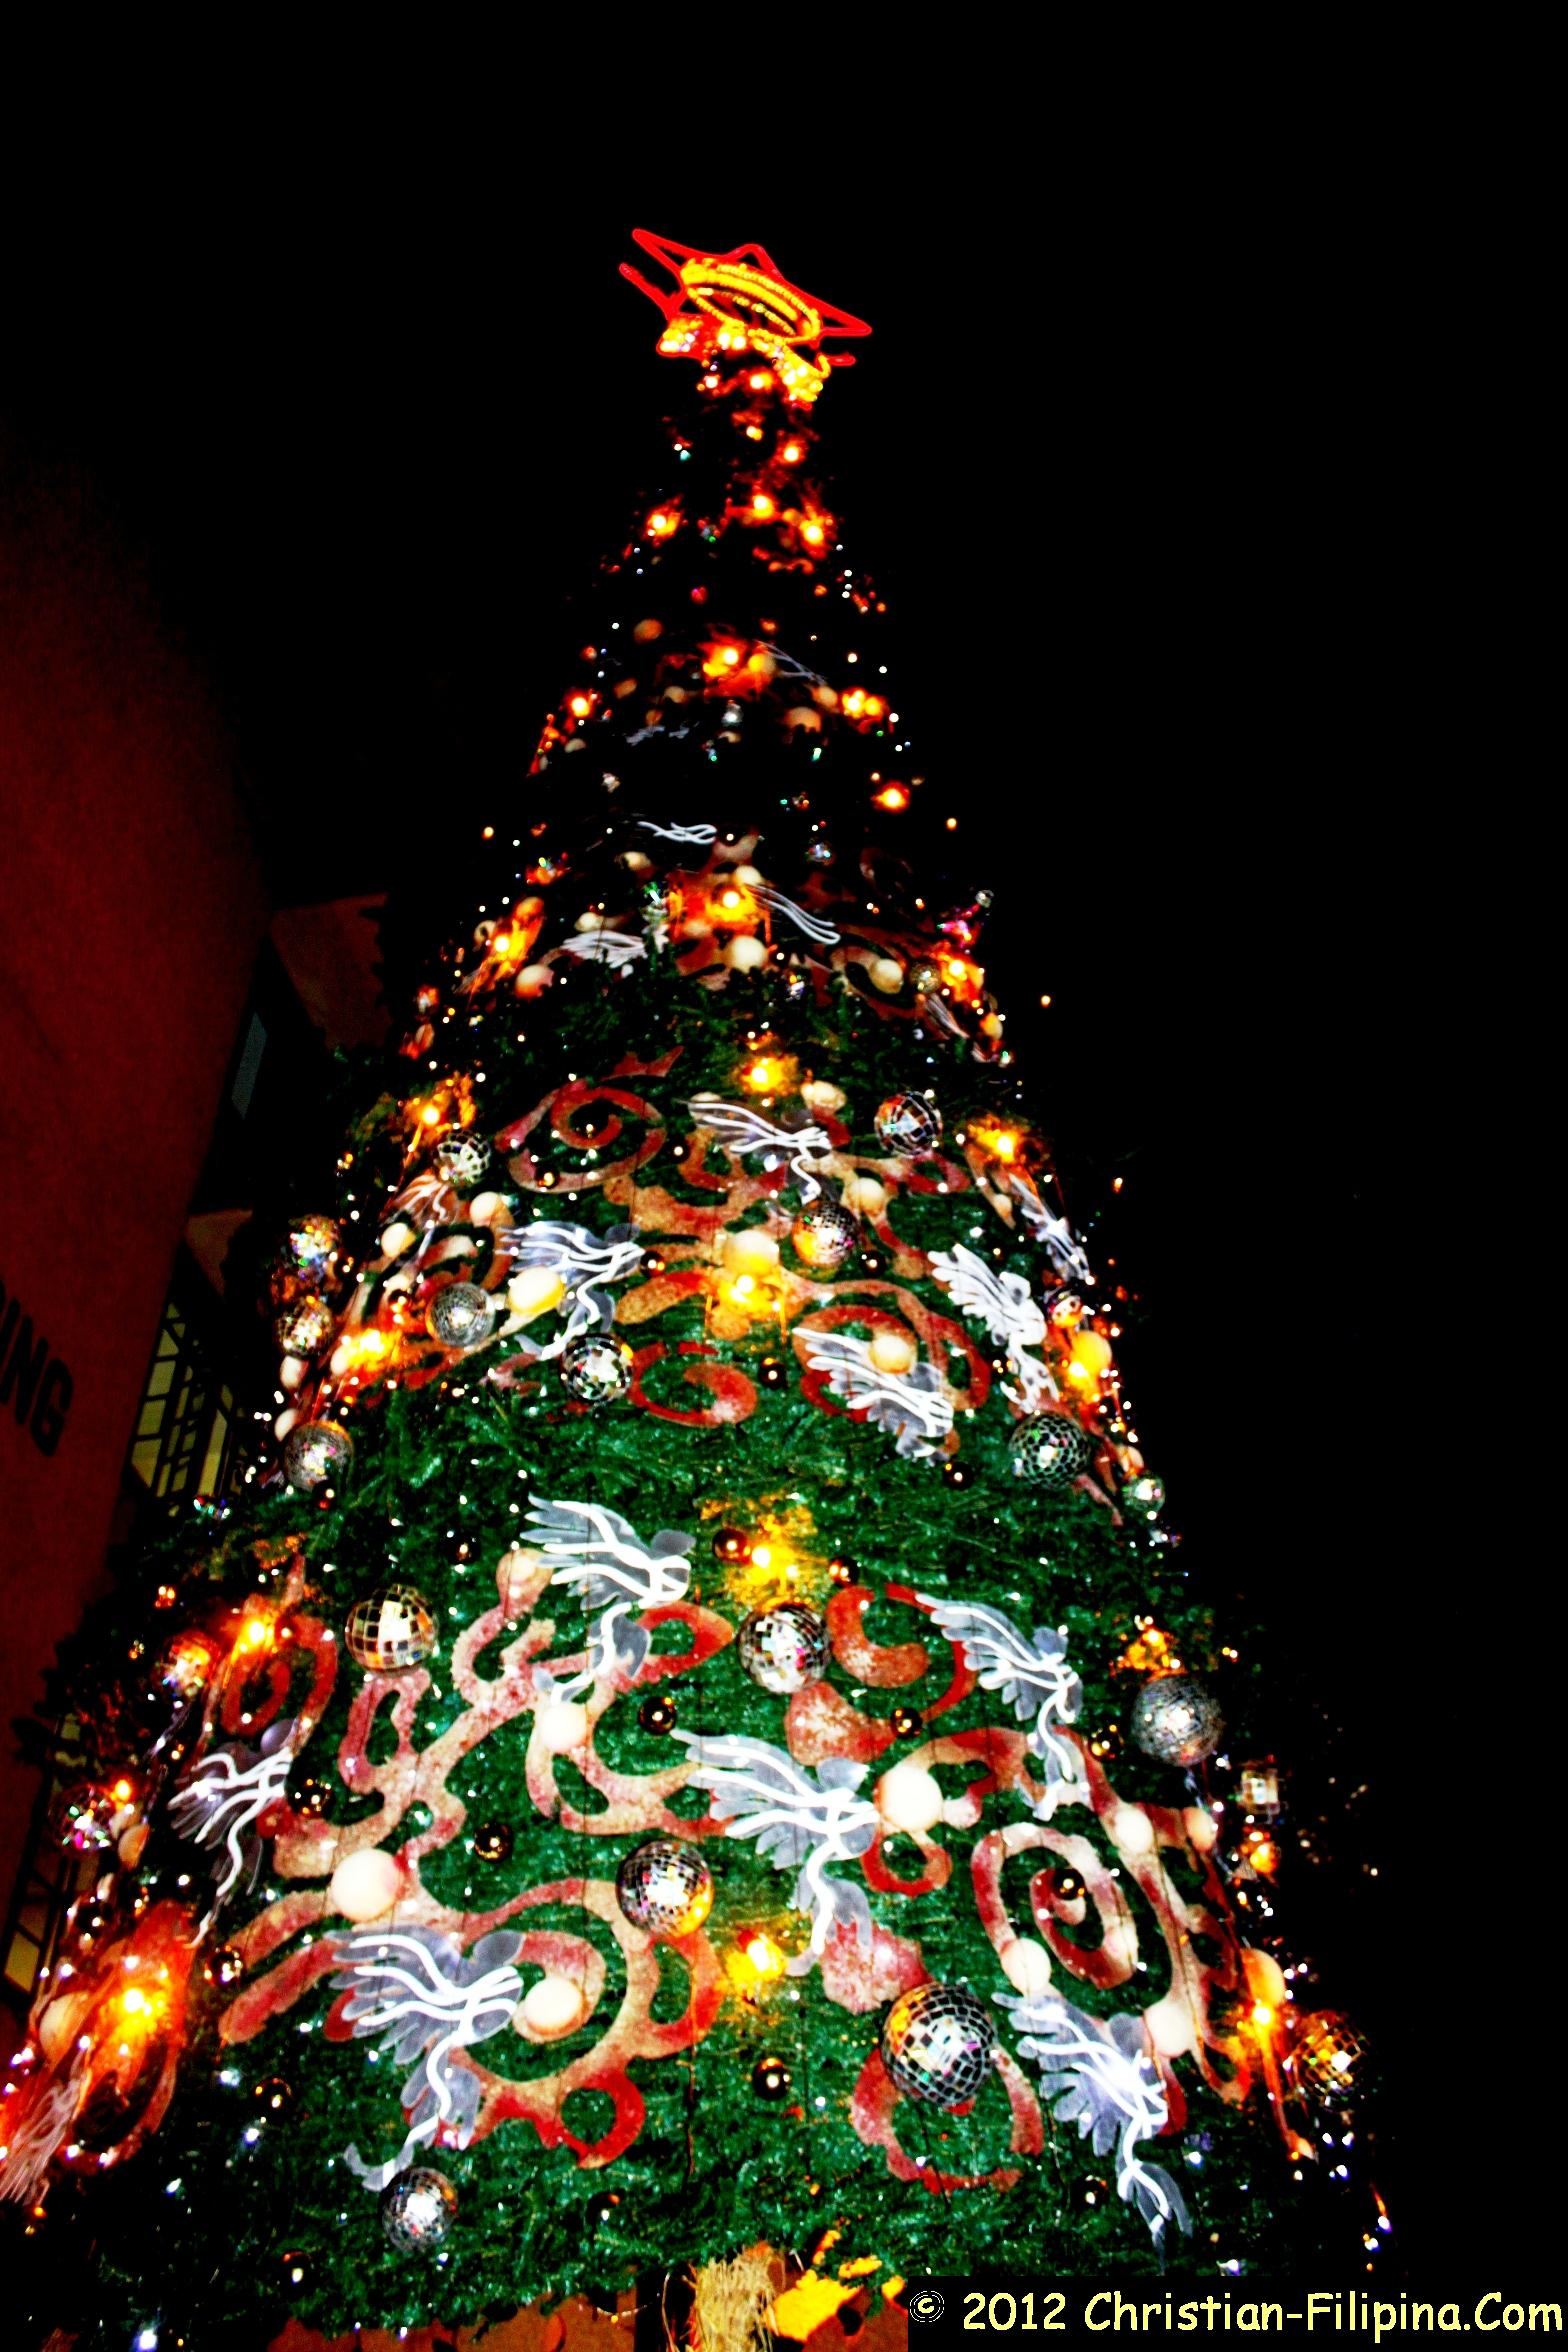 Photo of a 60-feet Christmas tree in Baguio, Philippines